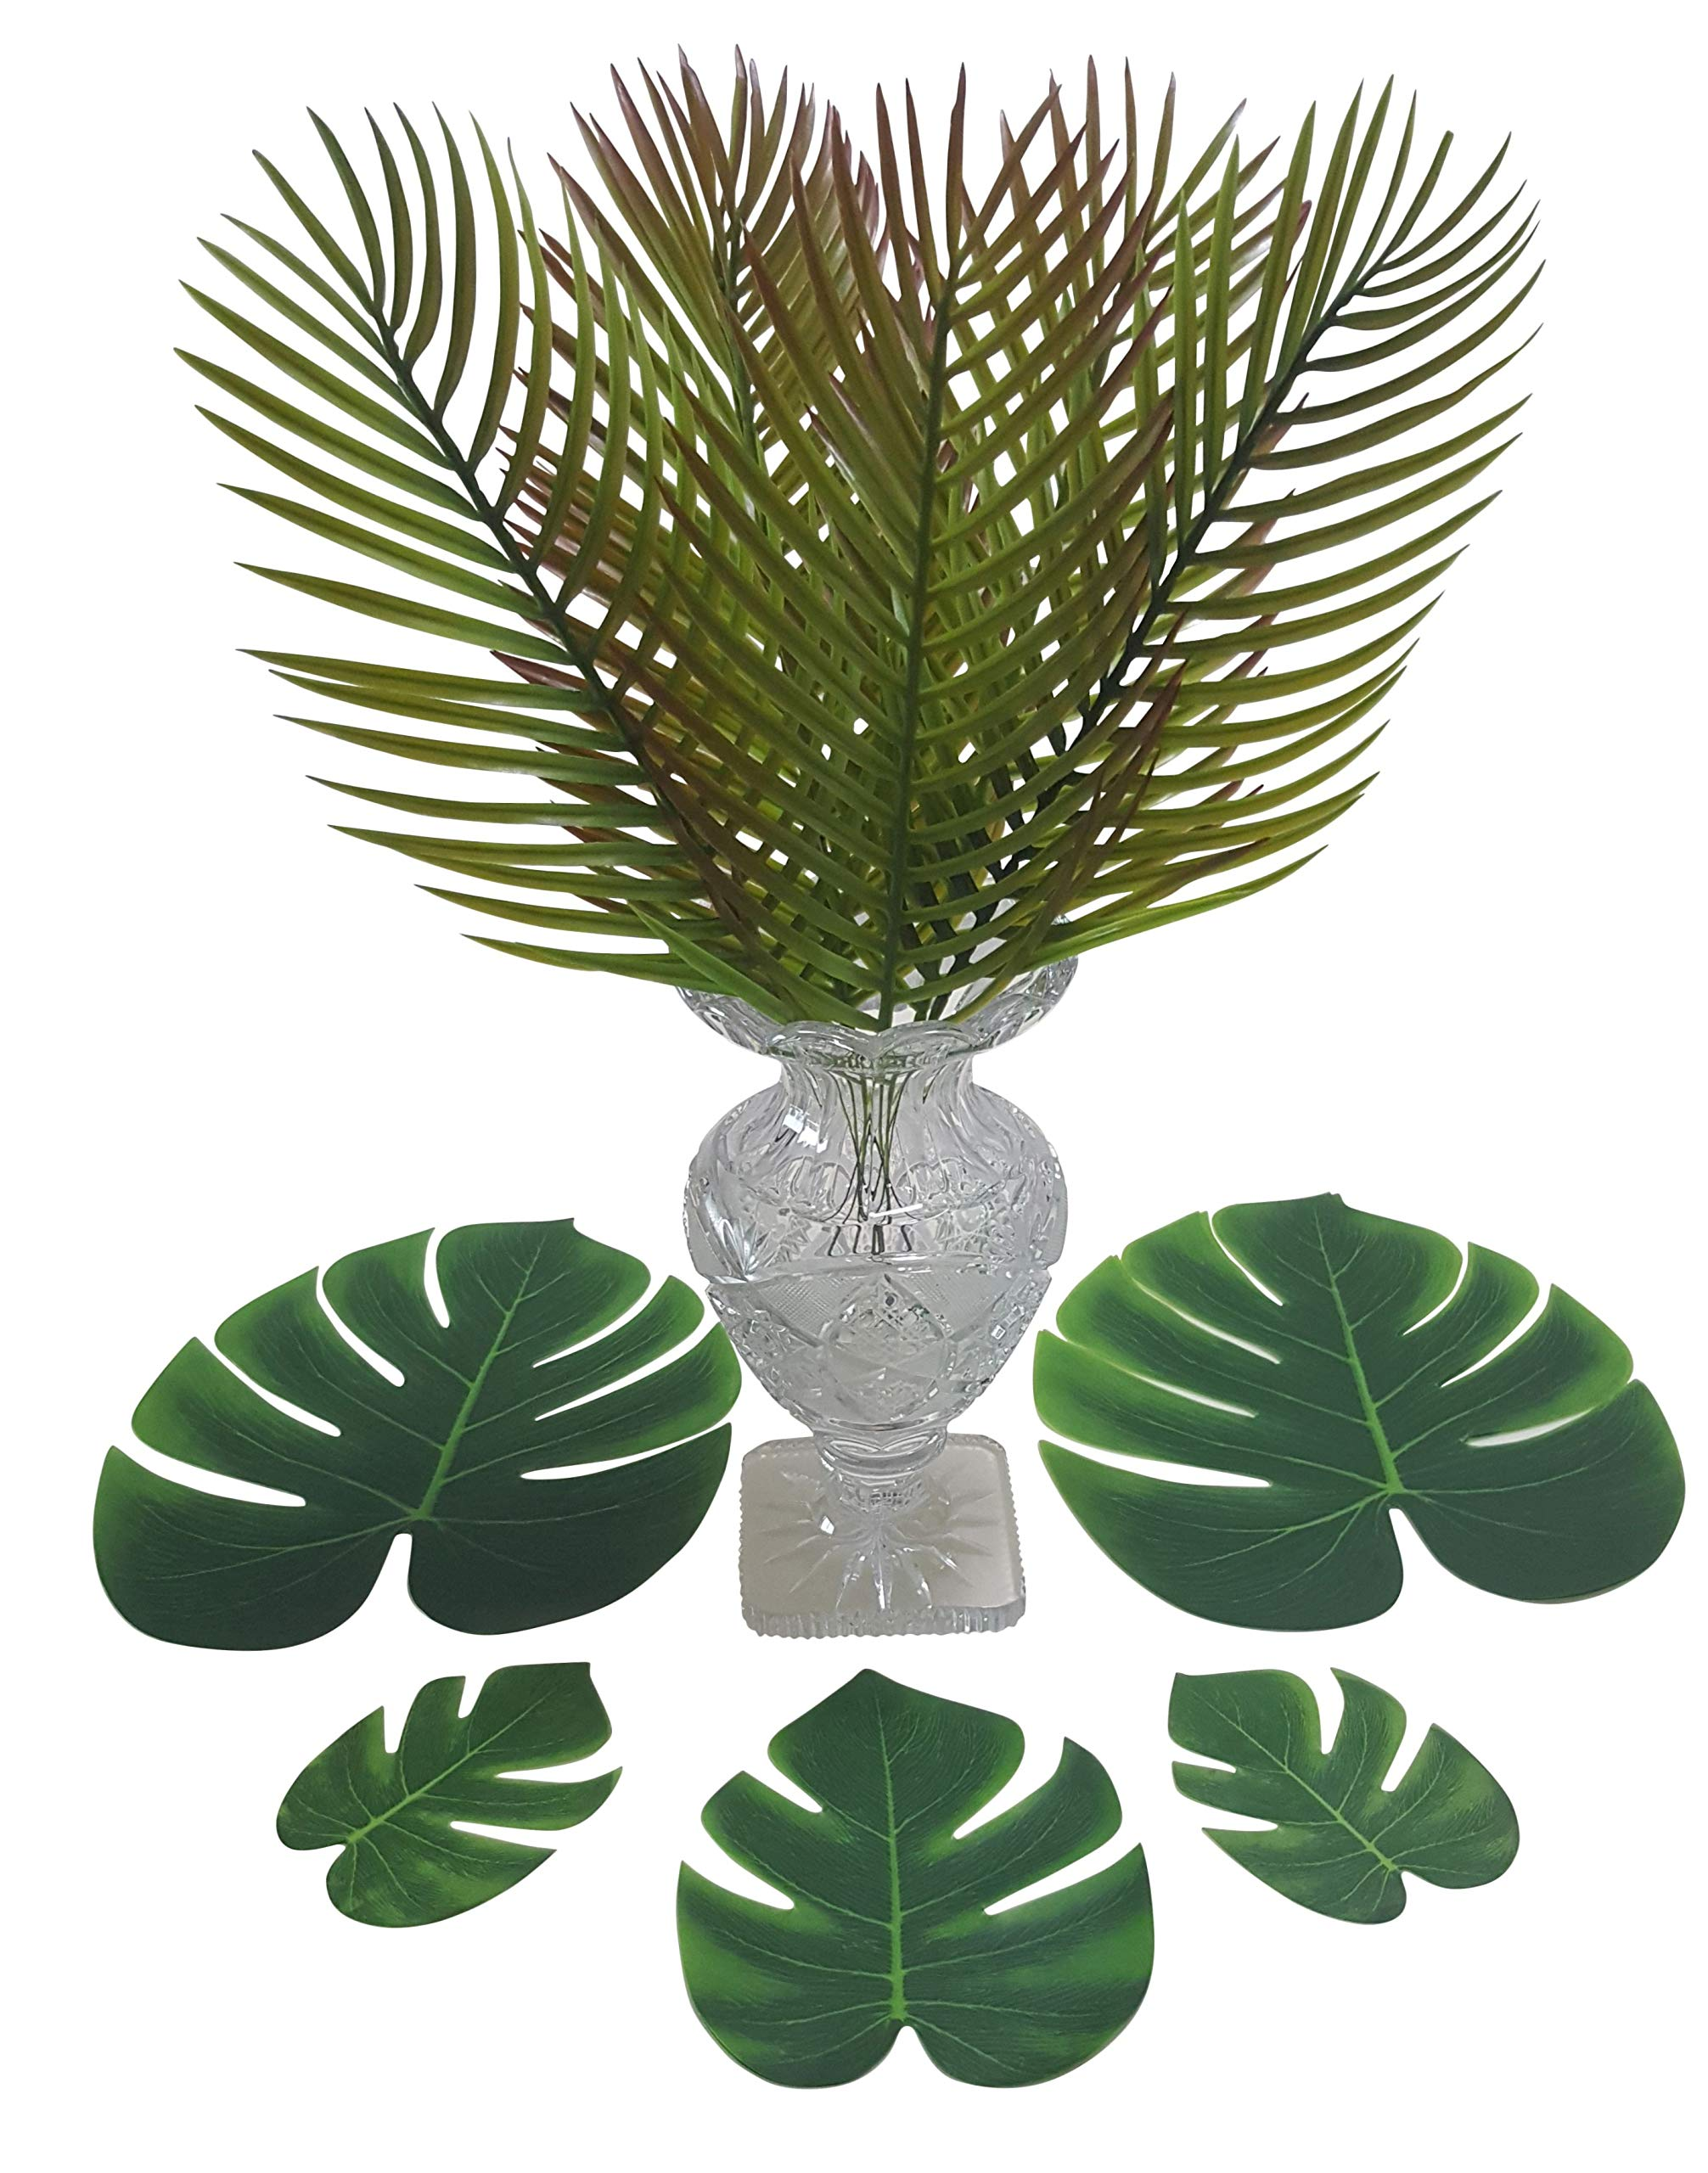 ShoppeWatch-Artificial-Palm-Leaves-with-Stem-and-Tropical-Monstera-Fronds-48-Pcs-Philodendron-Party-Decorations-Faux-Palm-Tree-Plant-Leaf-Fake-Imitation-Ferns-Branches-Home-Kitchen-Plastic-Decor